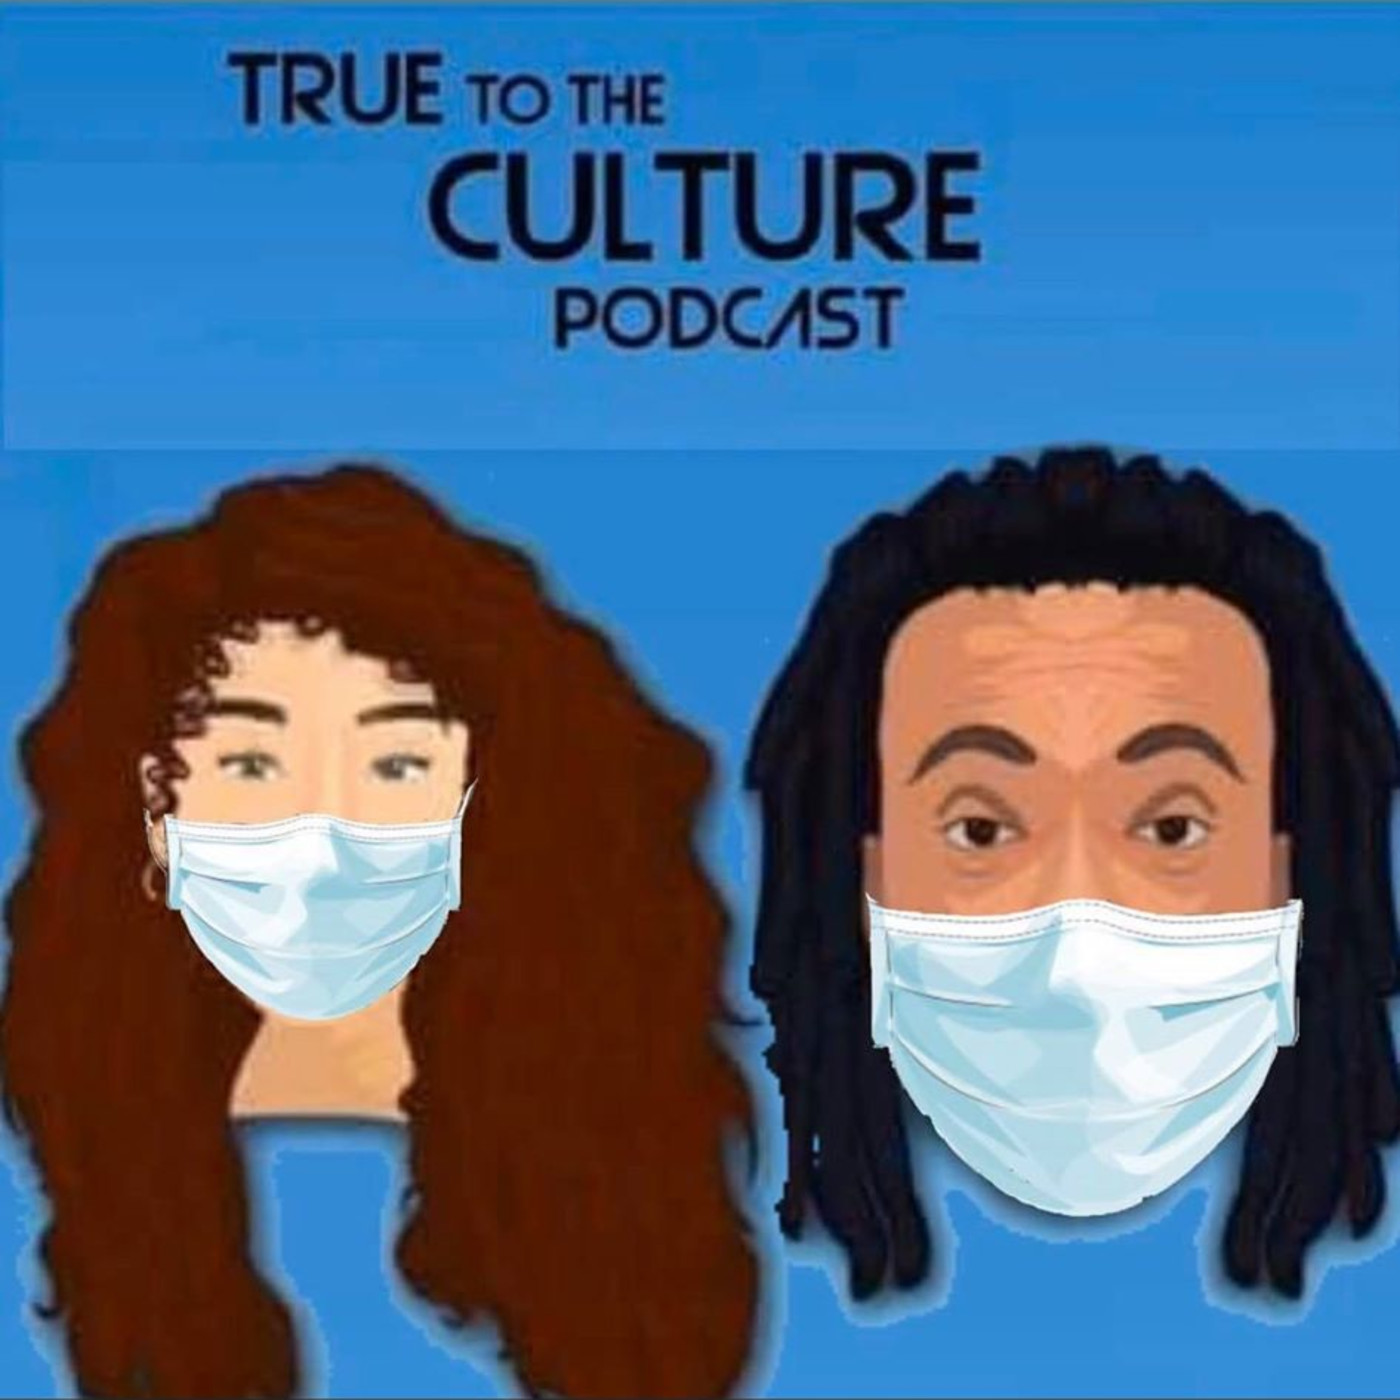 True To The Culture Podcast podcast show image